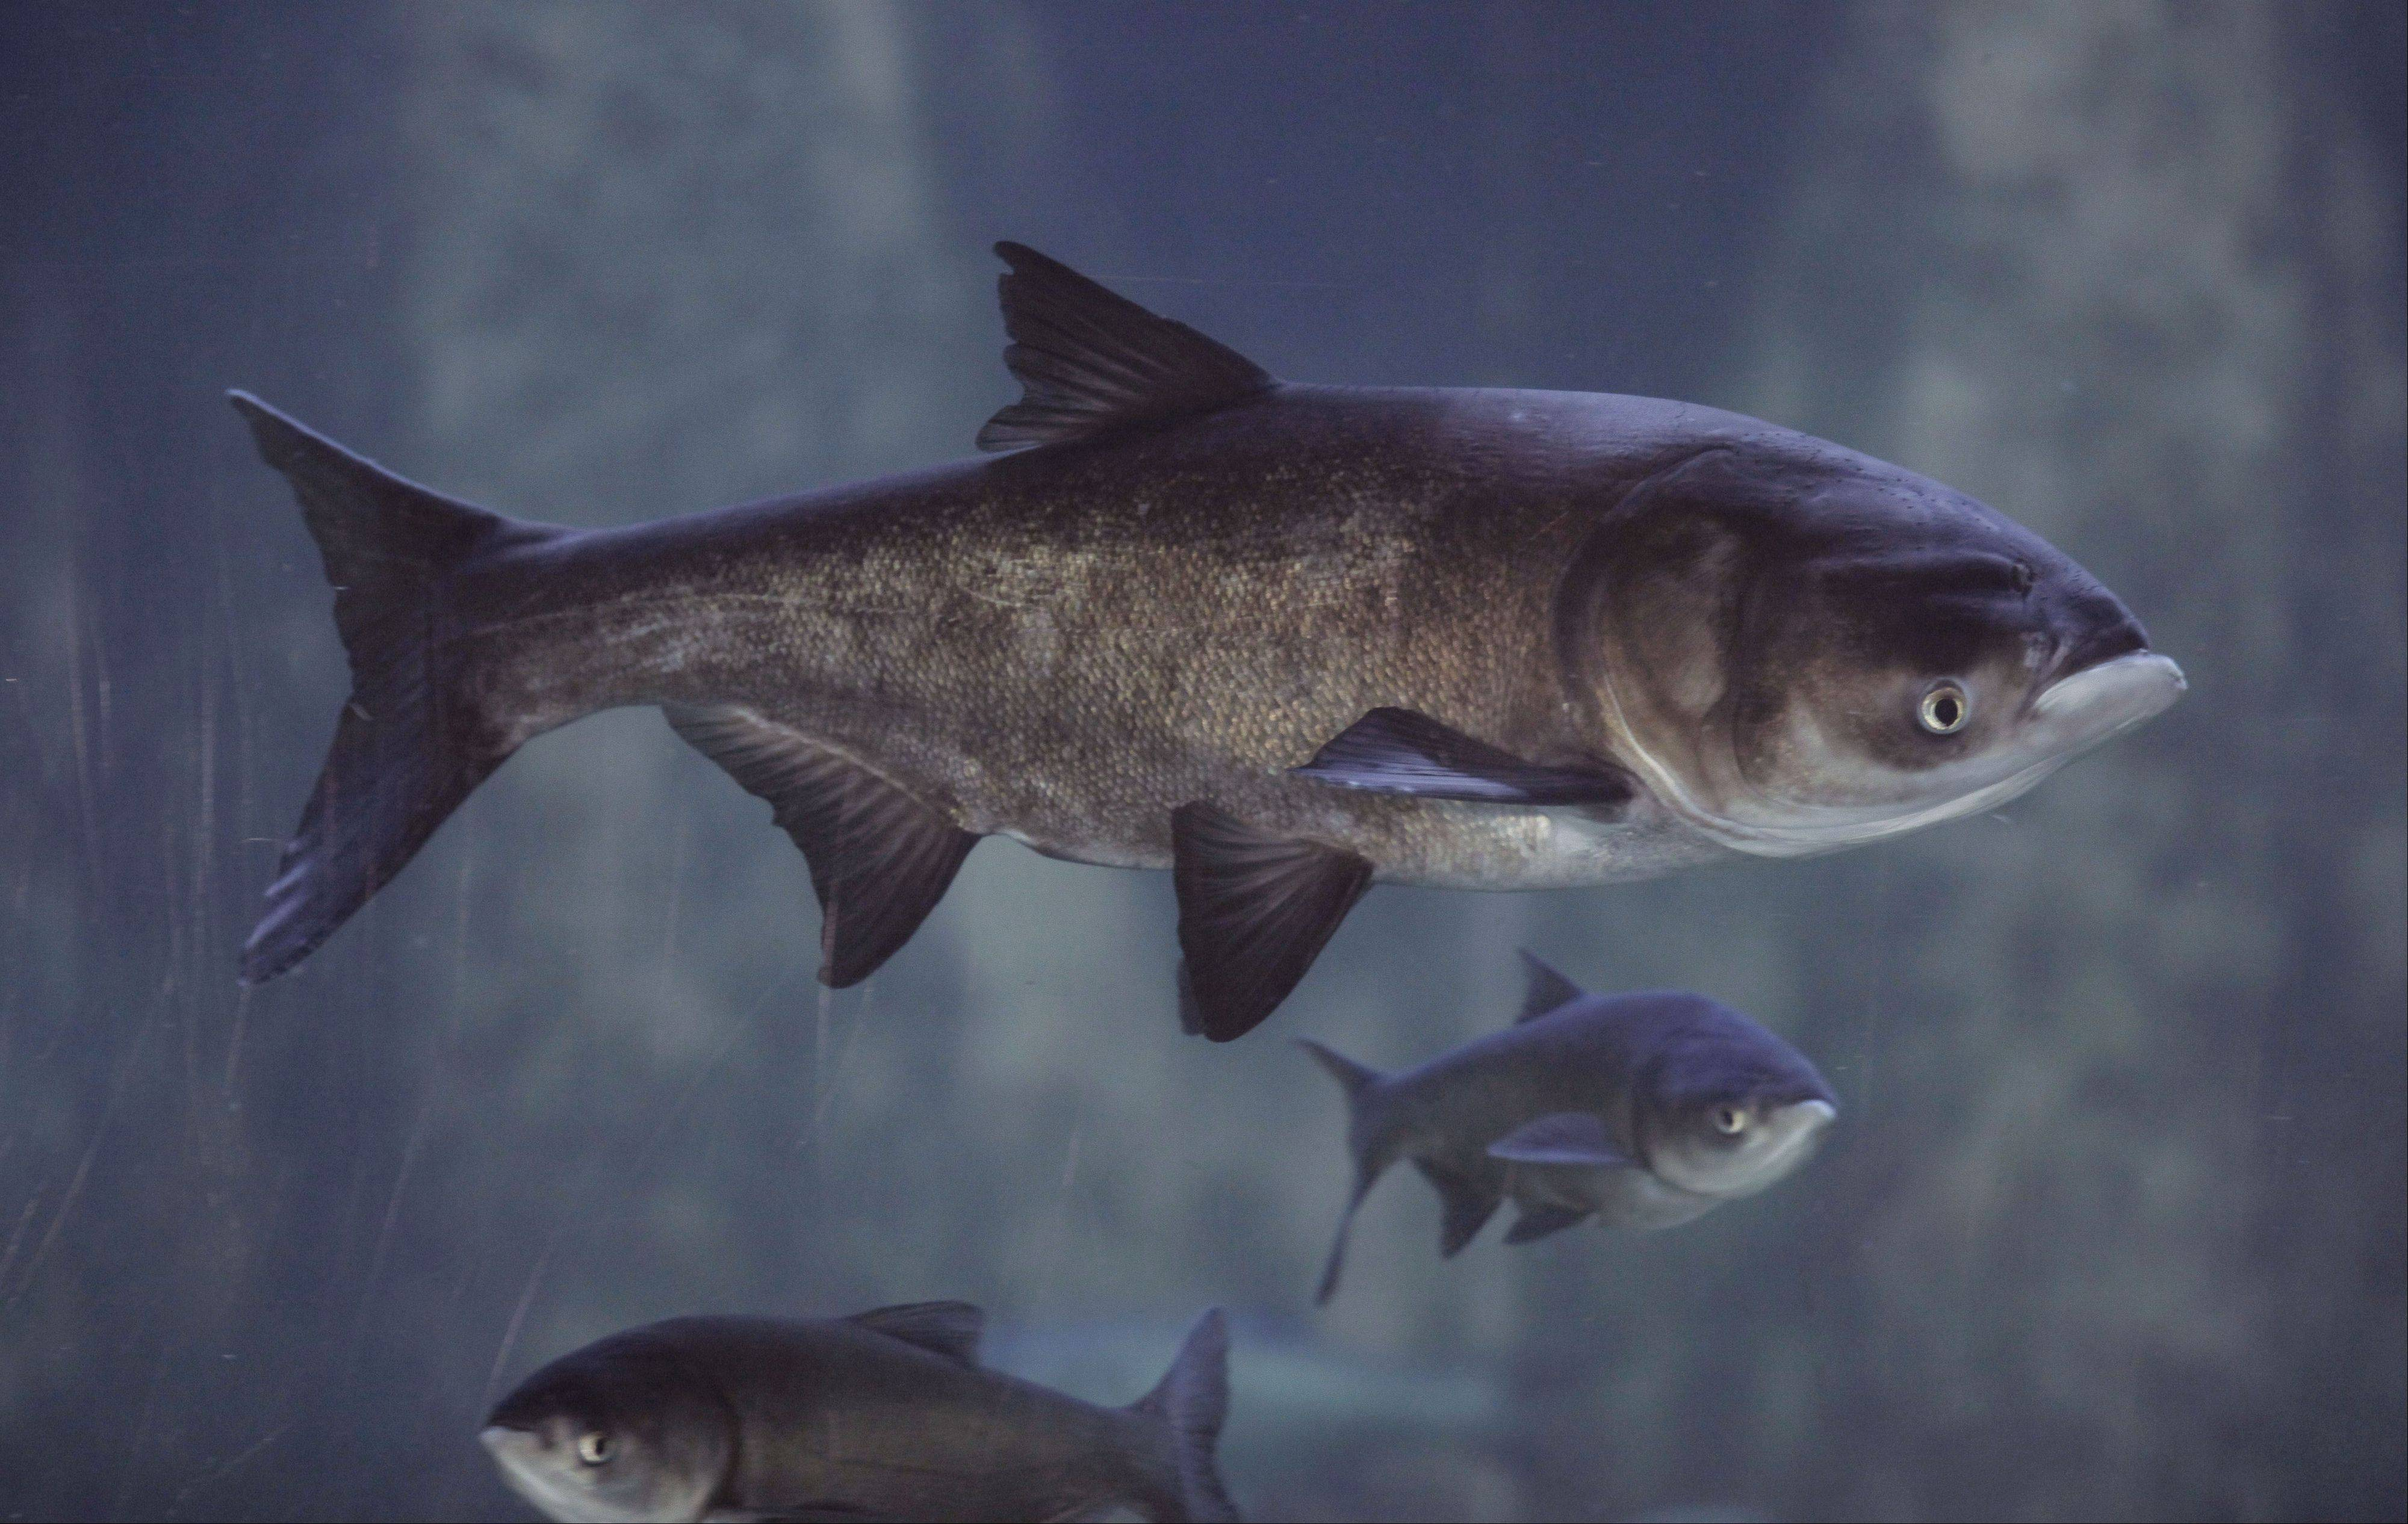 Scientists say if the voracious Asian carp gain a foothold in the Great Lakes, they eventually could out-compete native species and severely damage the region�s $7 billion fishing industry.